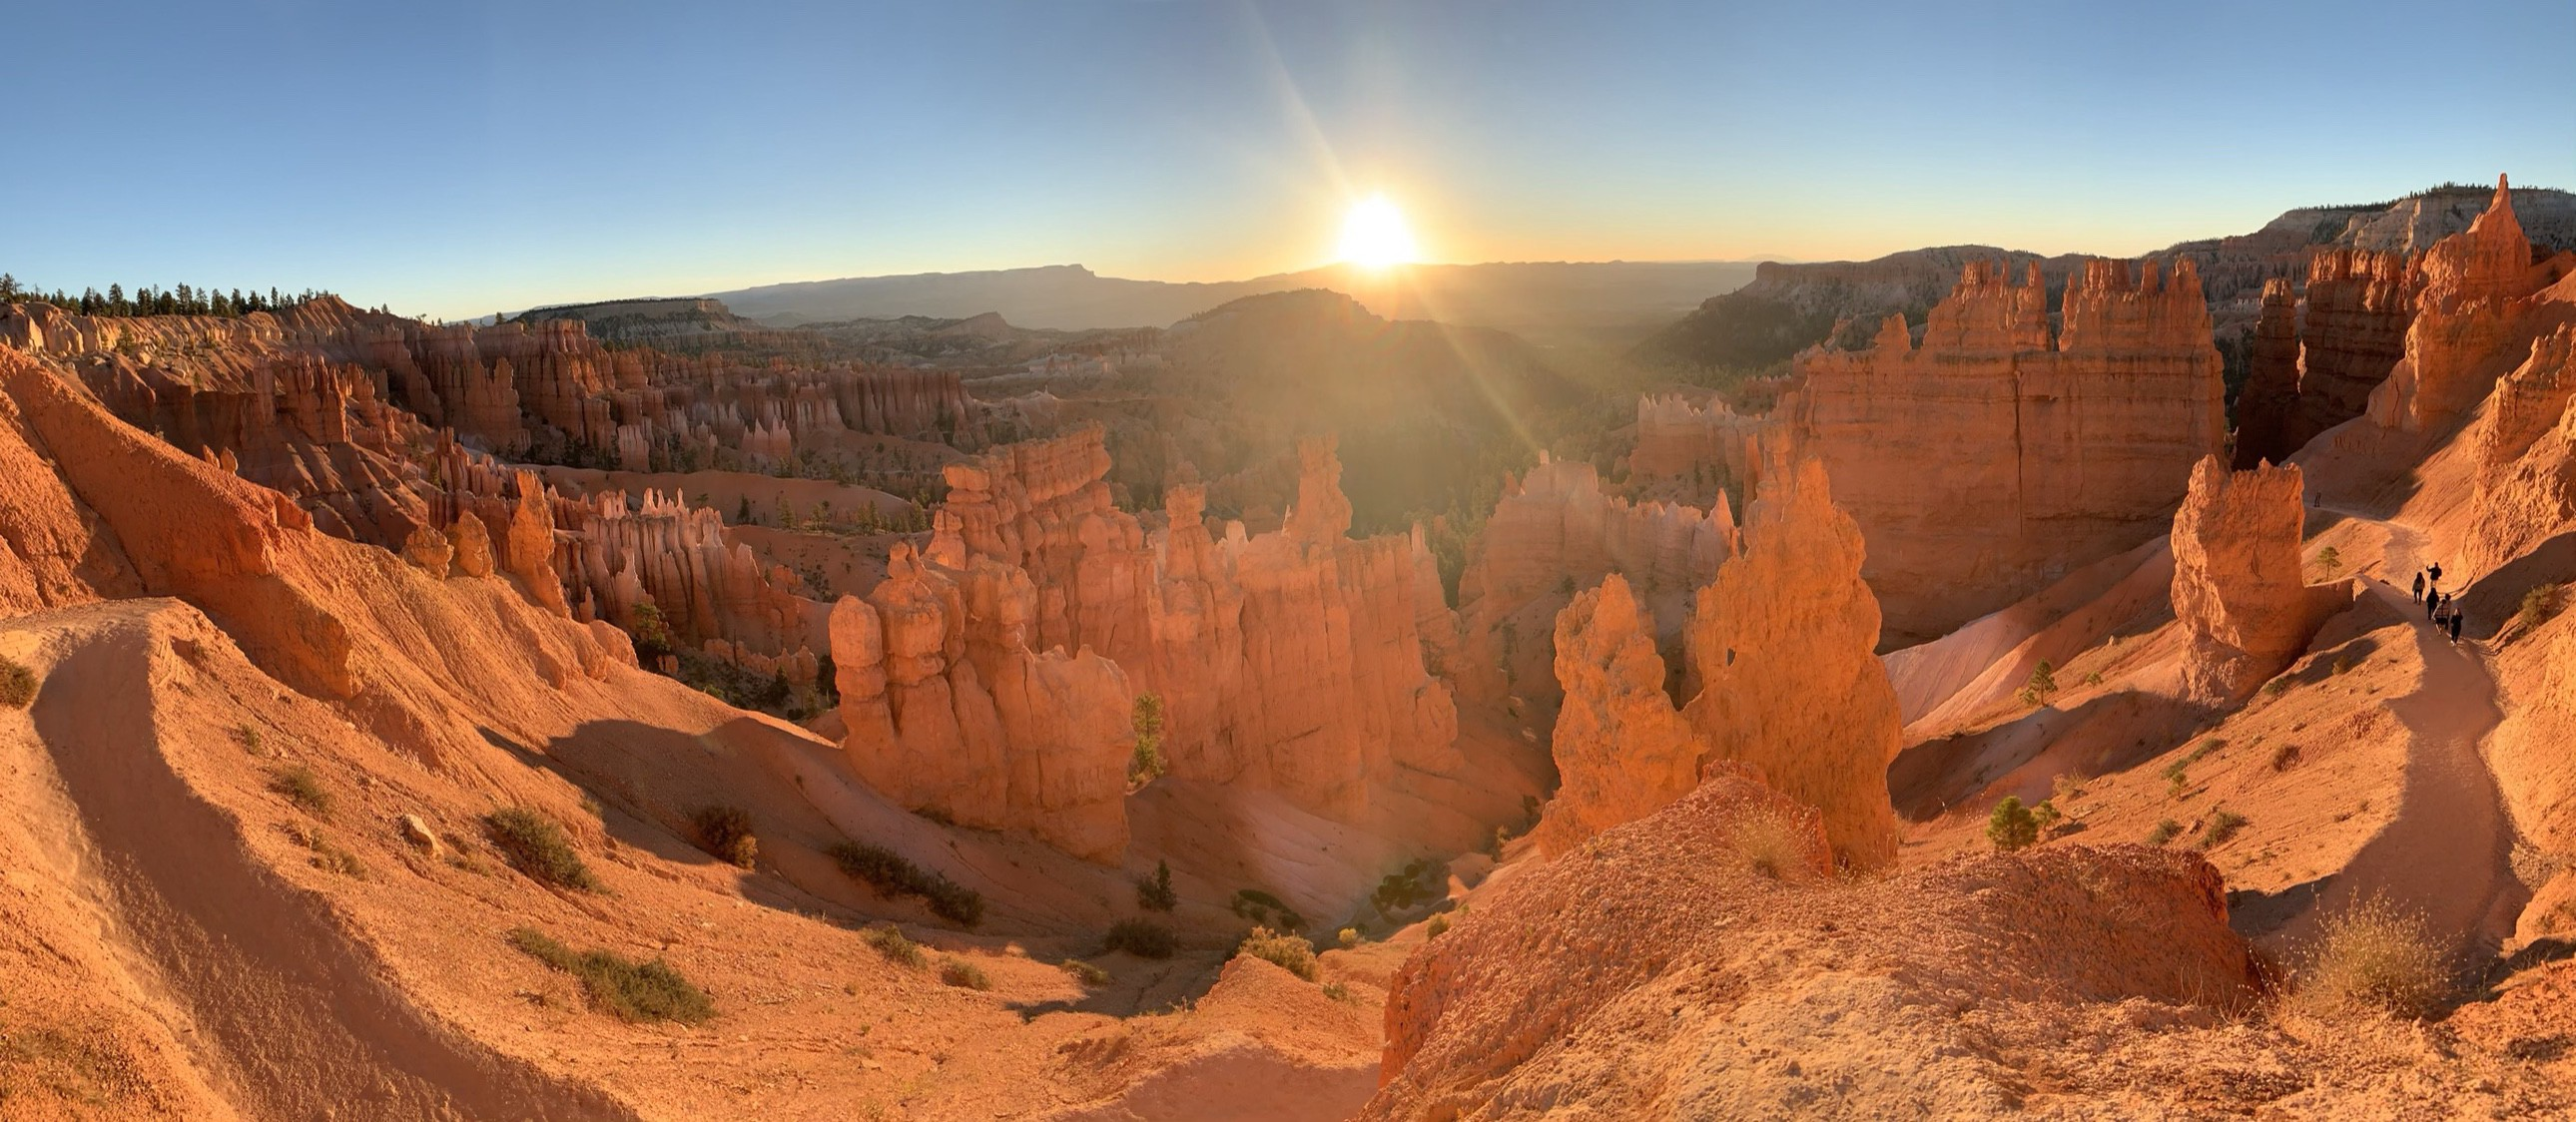 Why The Iphone Xs Is The Only Camera You Need On Your Next